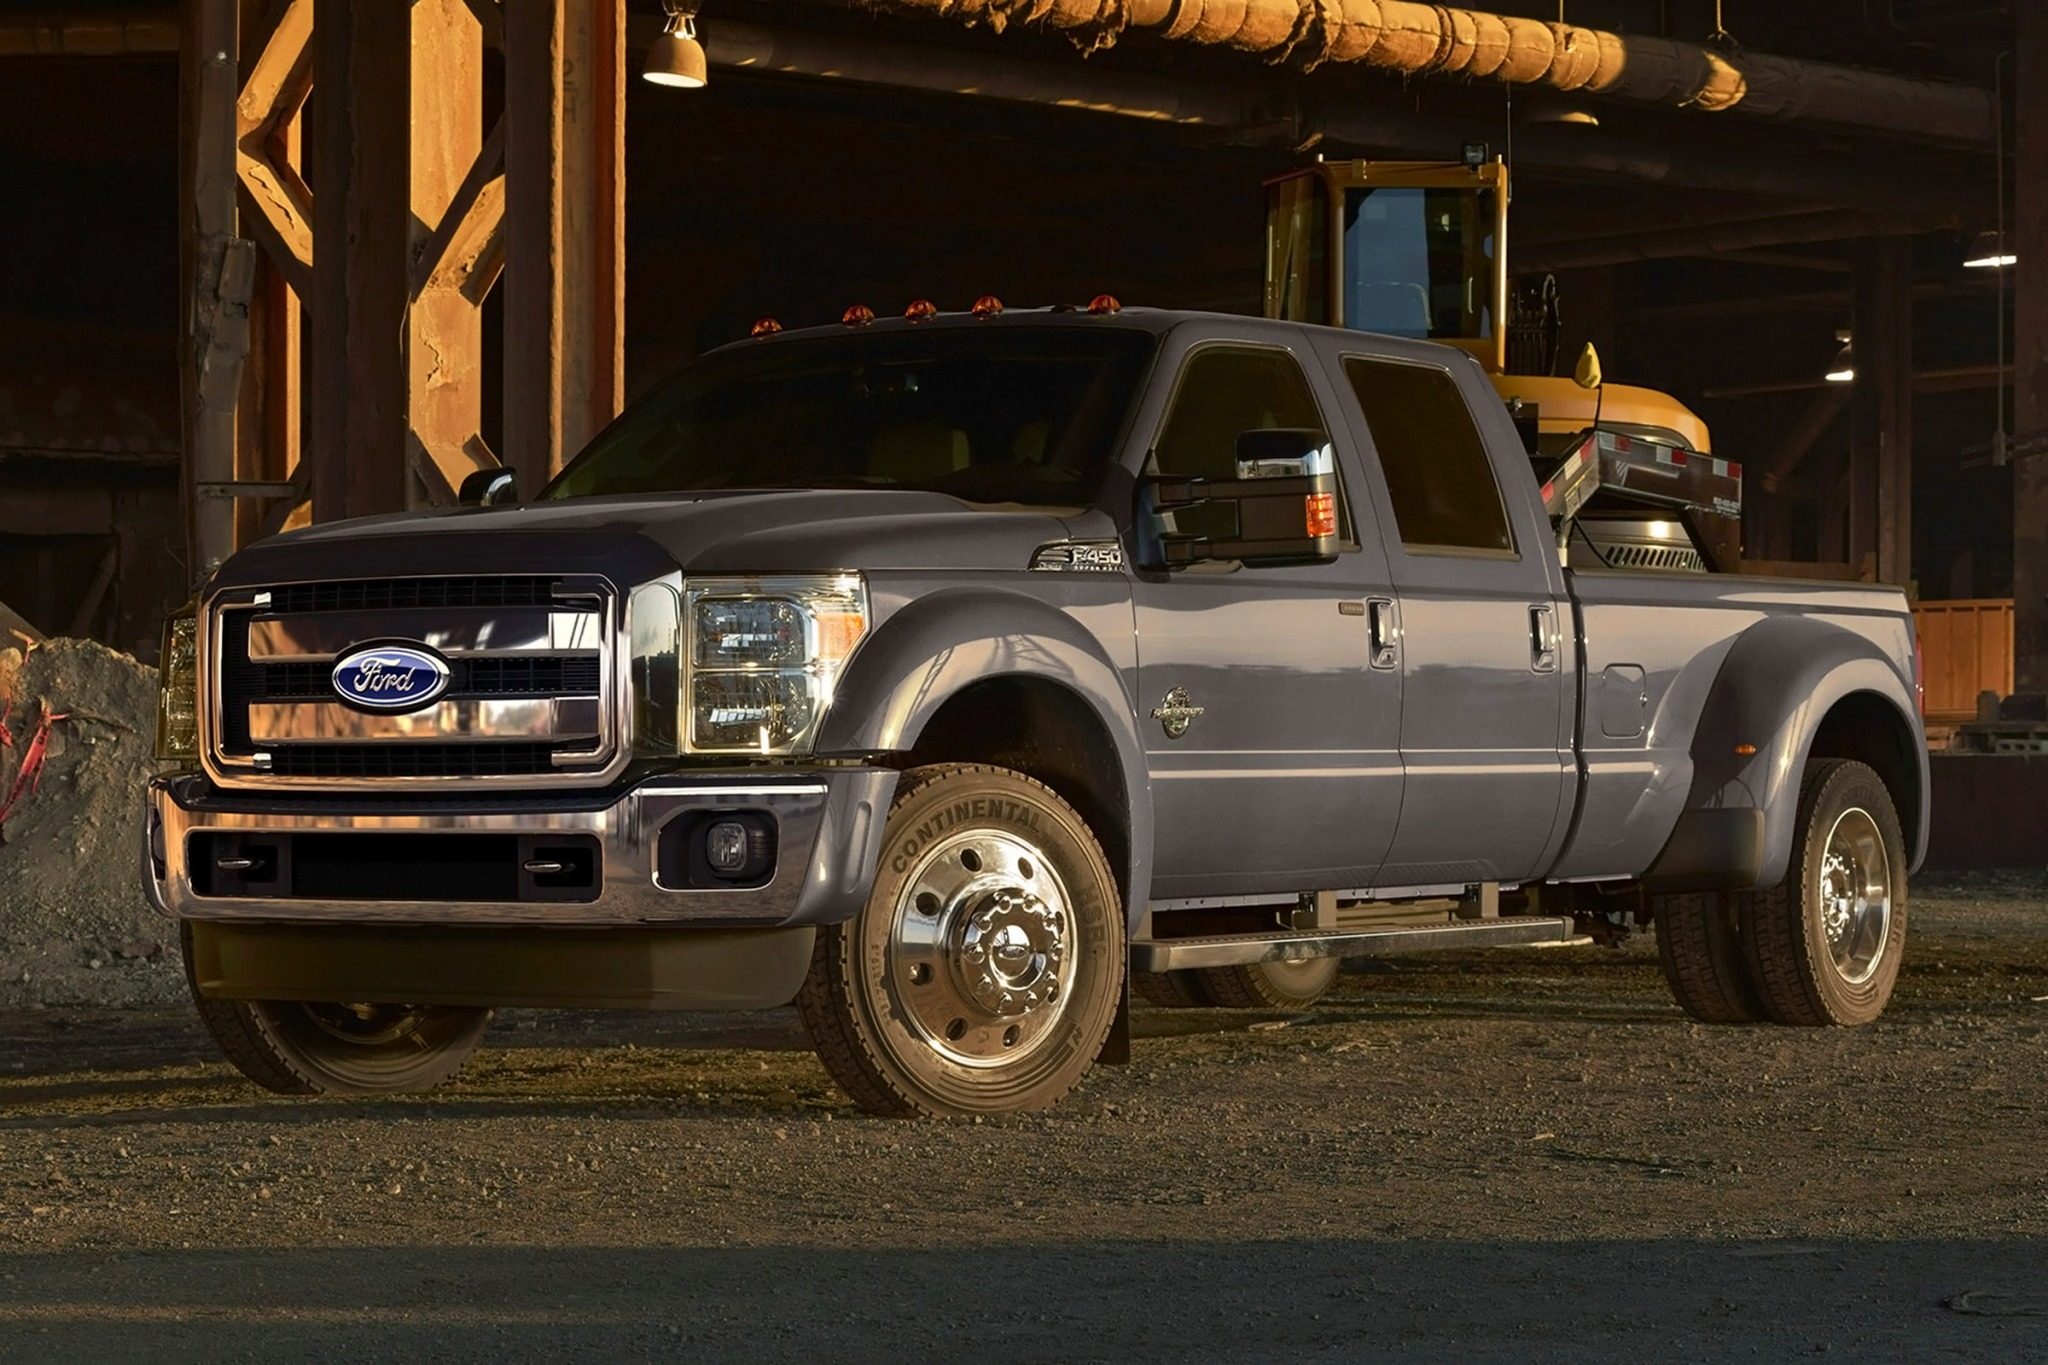 2015 Ford F-450 Super Dut interior #4